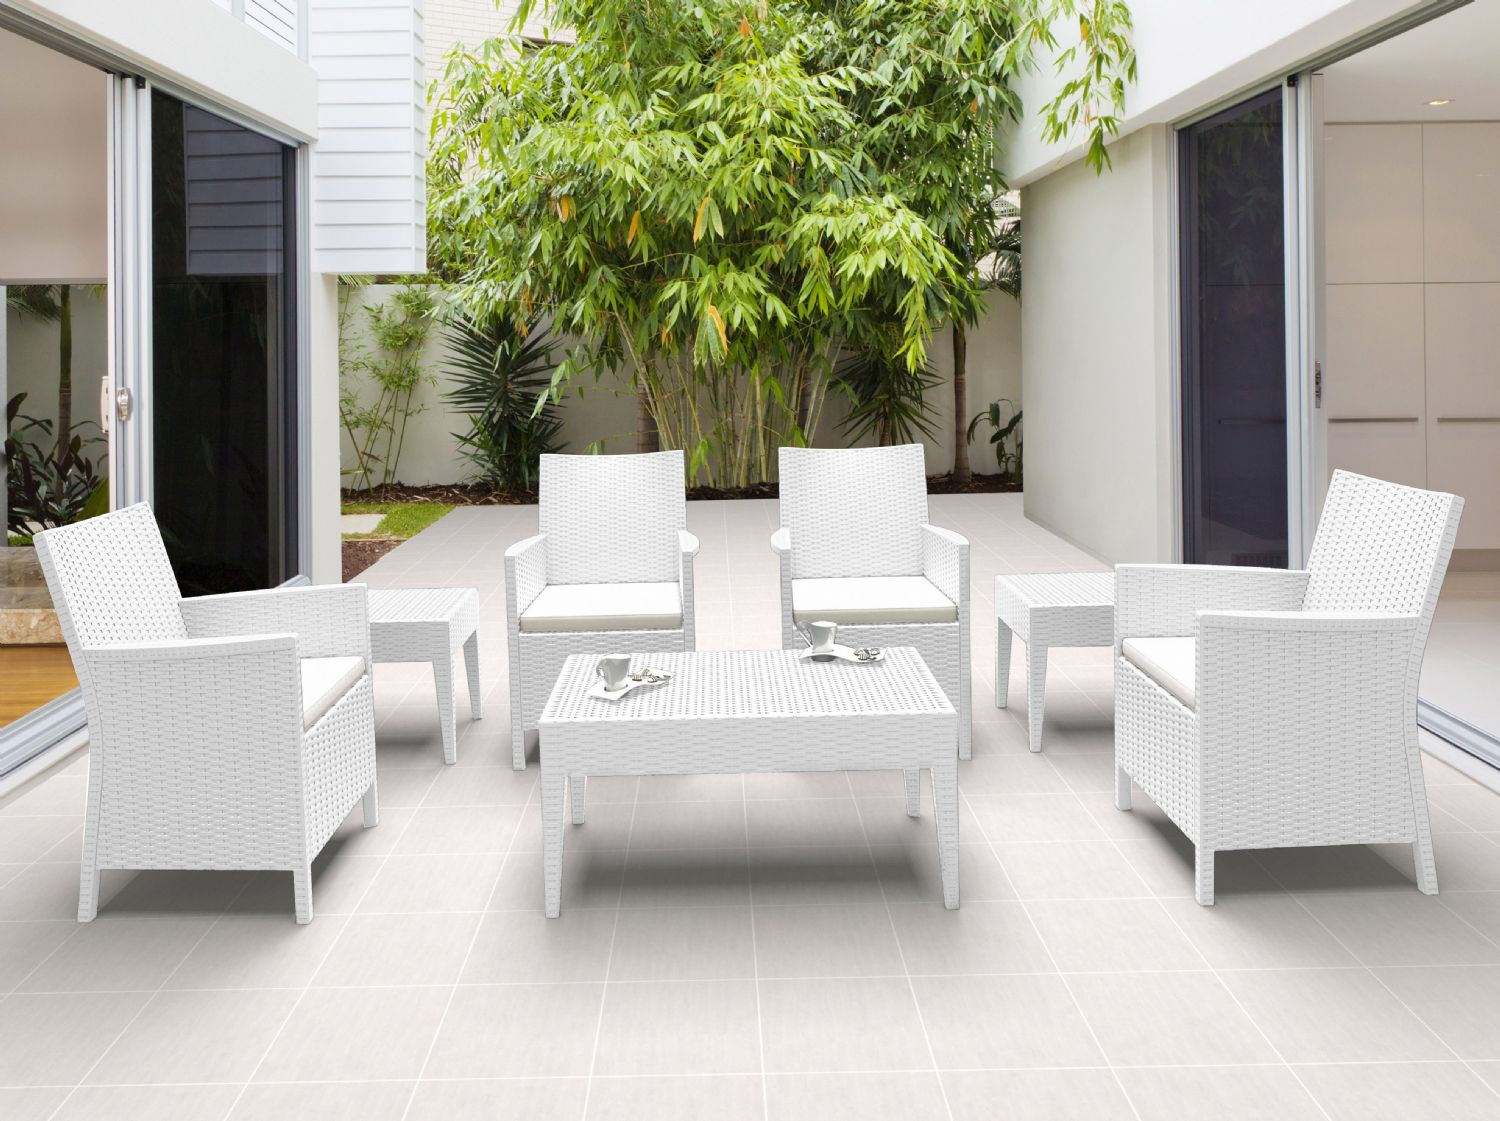 California Wickerlook Resin Patio Seating Set 7 Piece White ISP8062S-WH - 4